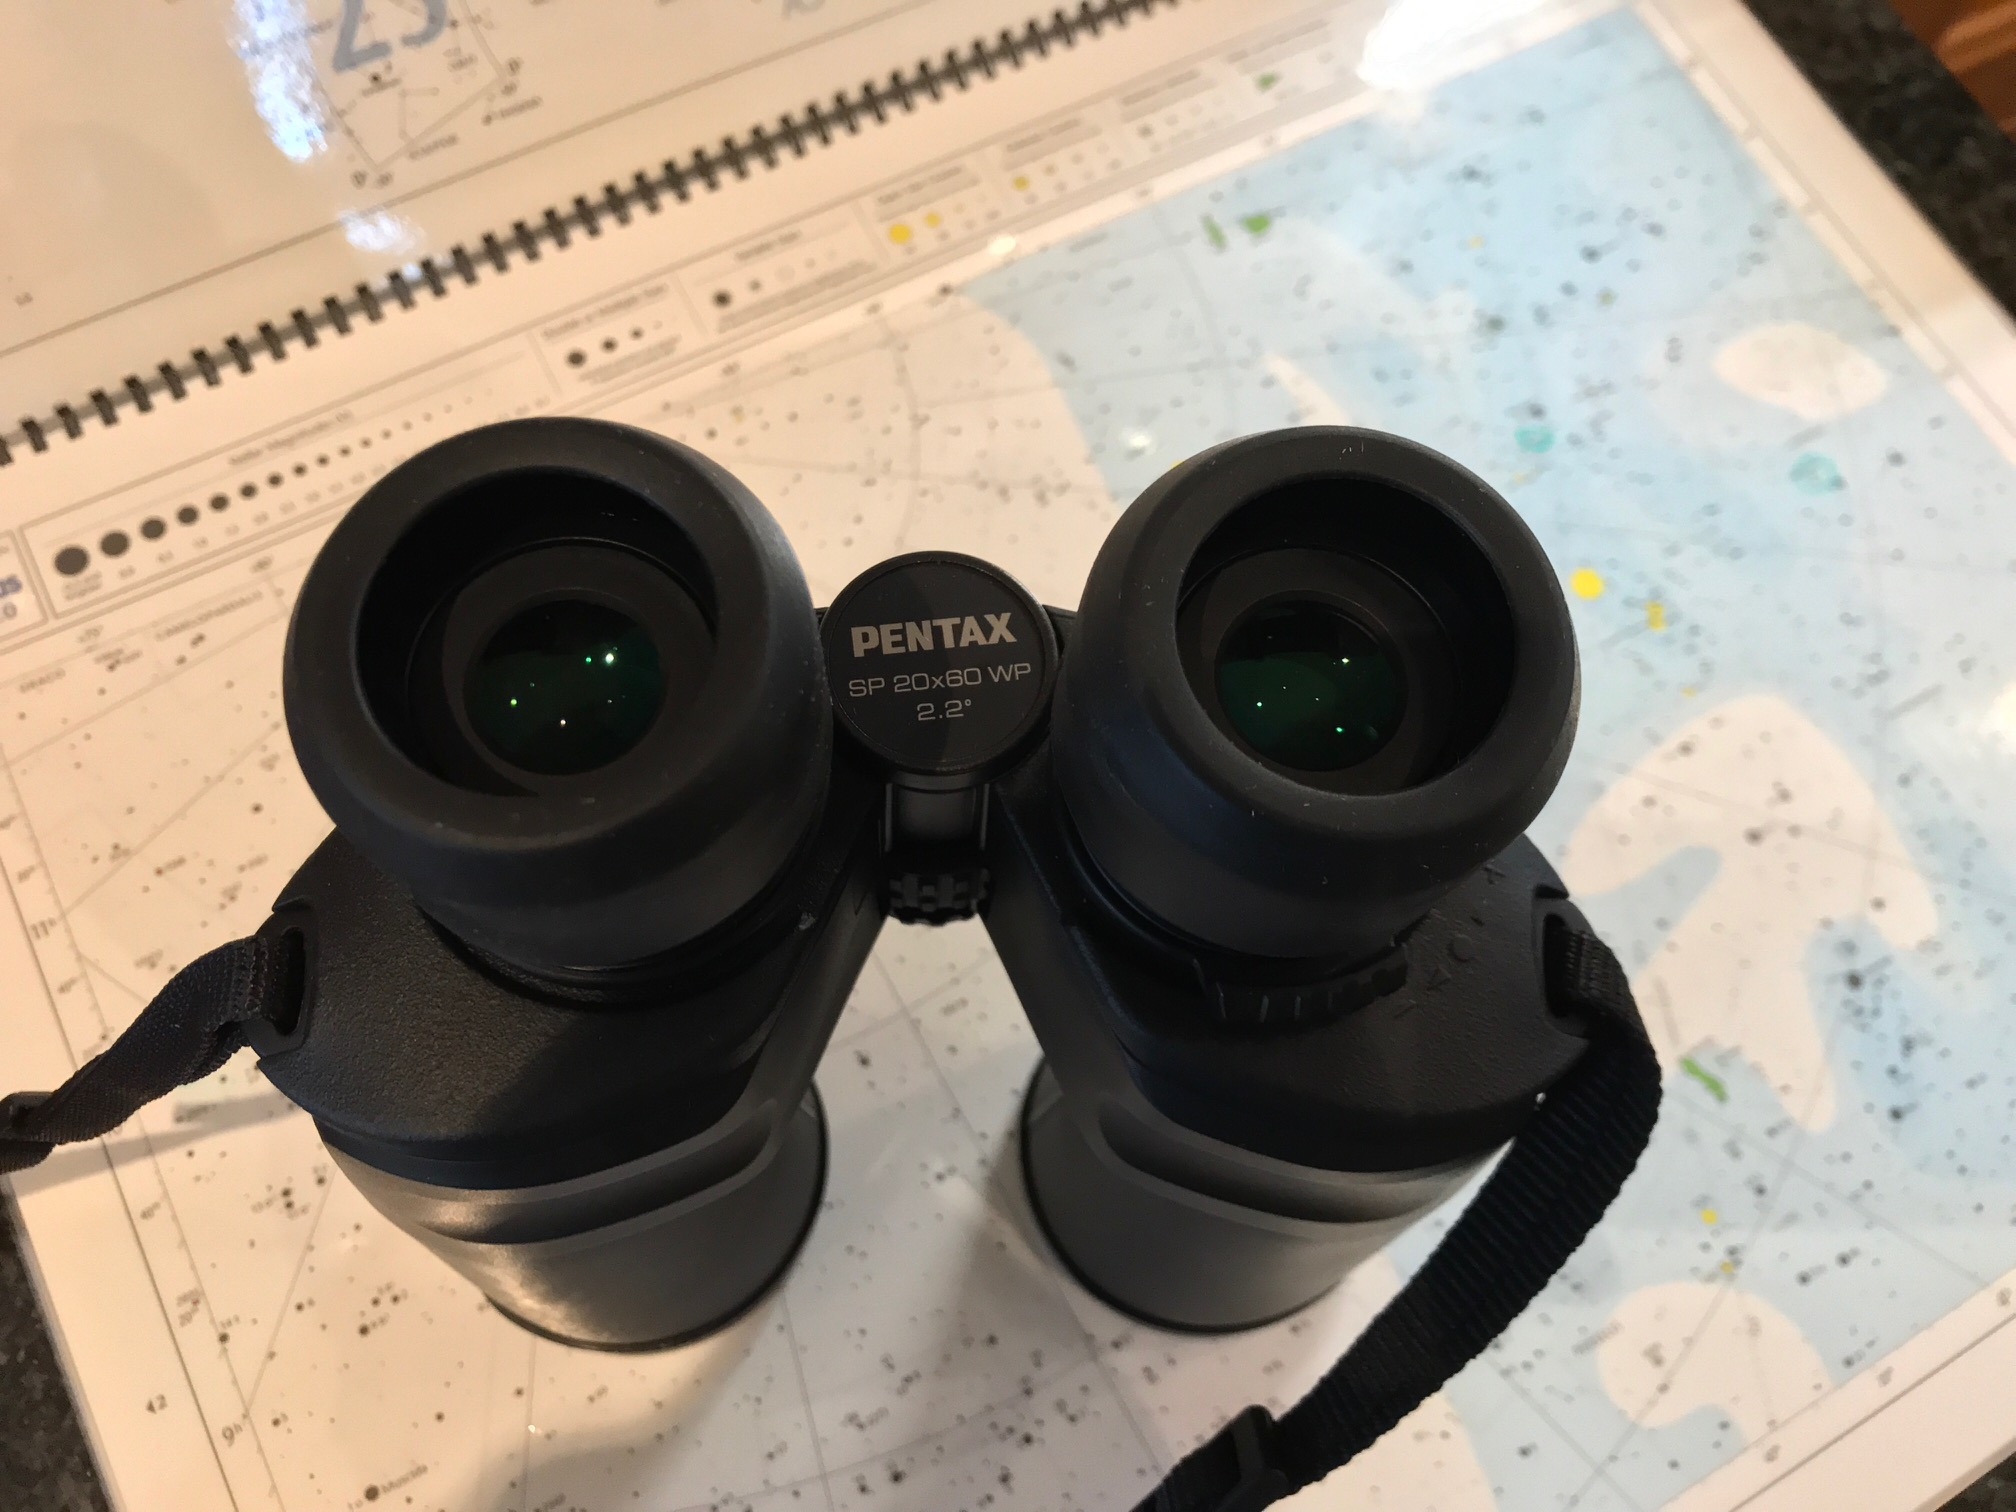 56354fc02d3 COMPLETED - Sold - Pentax SP 20x60 WP Binoculars - £130 ovno - Sold ...